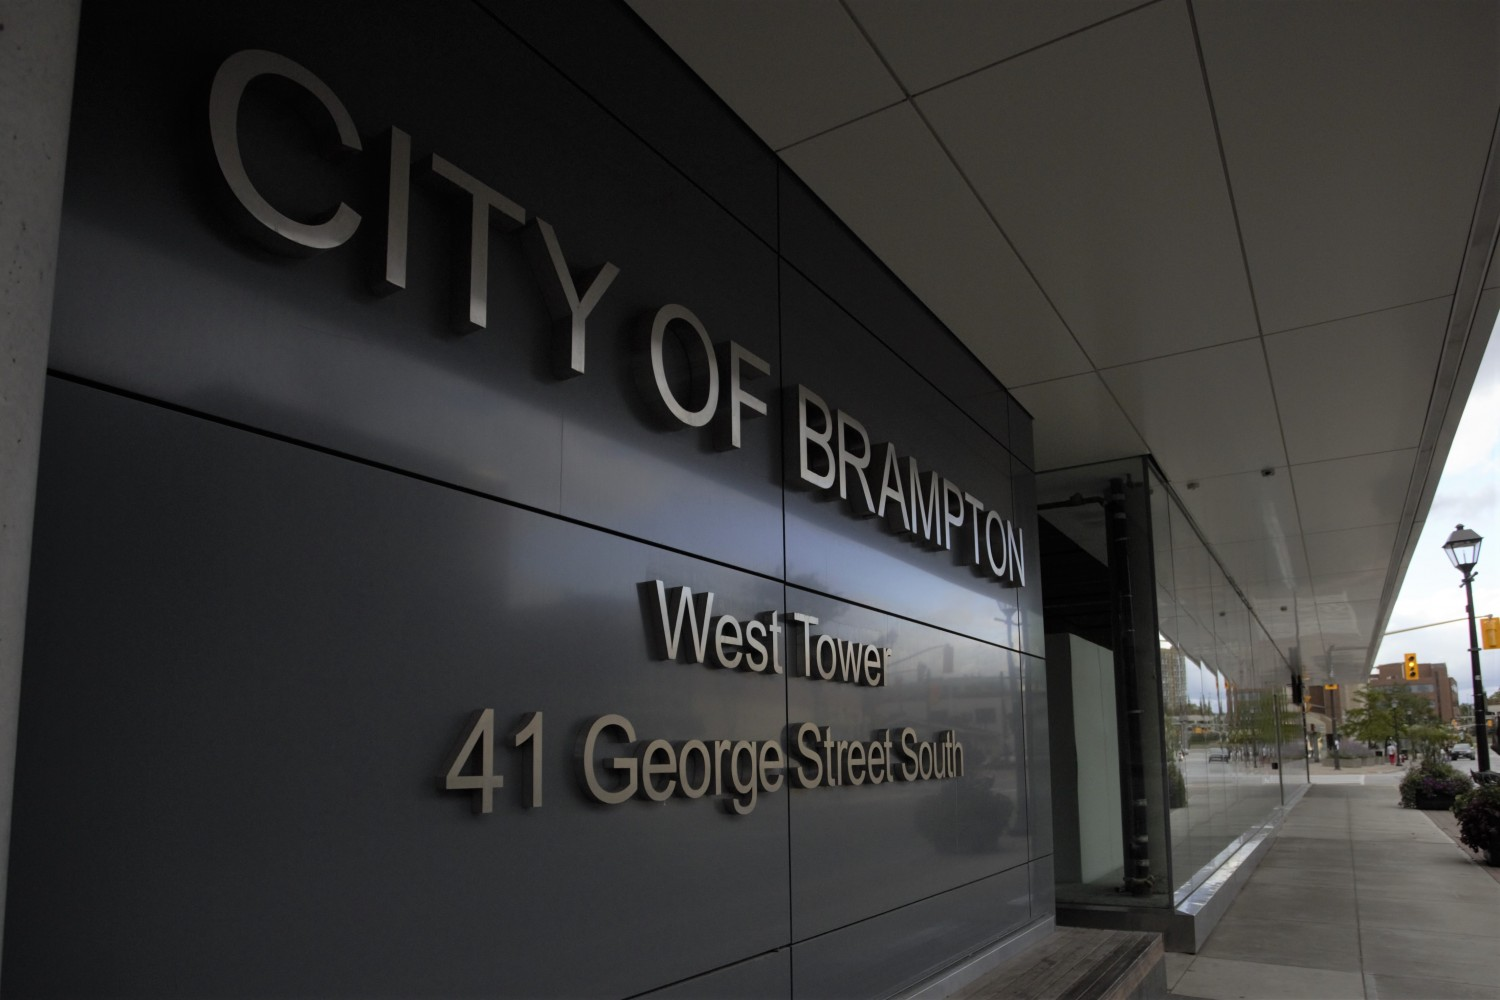 Mayor wants zero percent tax increase in 2019, staff has proposed 5.4 percent; something has to give